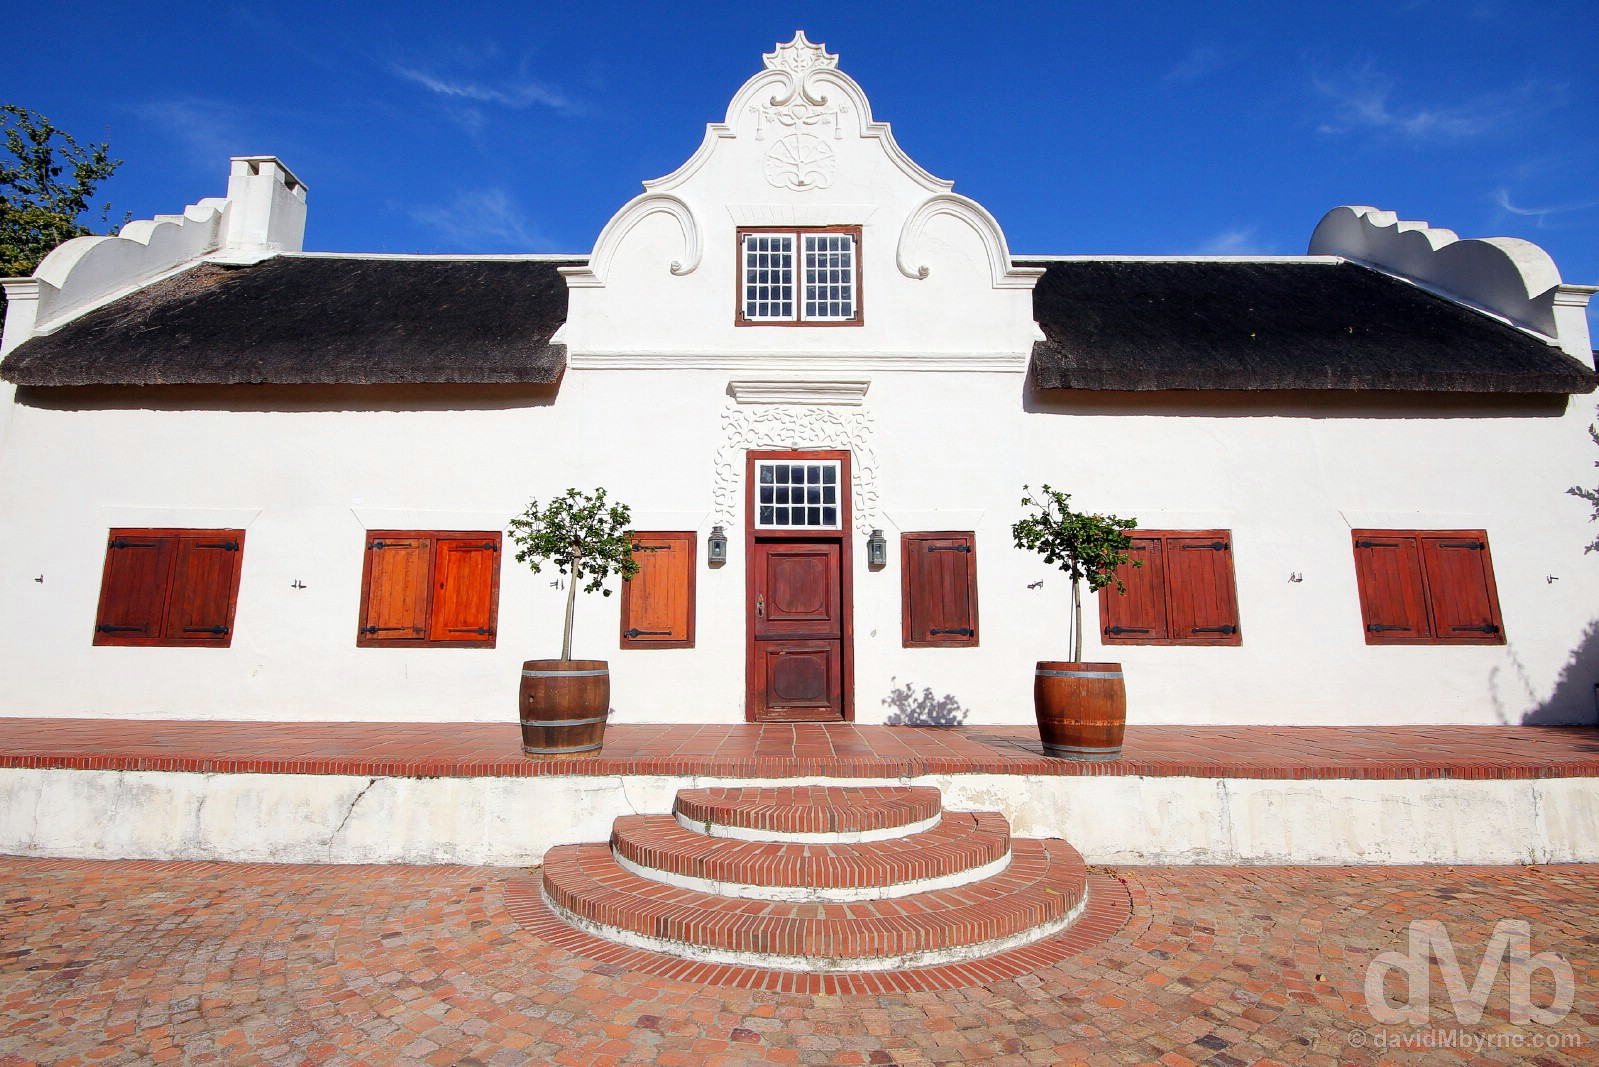 Cape Dutch architecture on the estate of the Blaauwklippen Vineyards, Stellenbosch, Western Cape, South Africa. February 18, 2017.